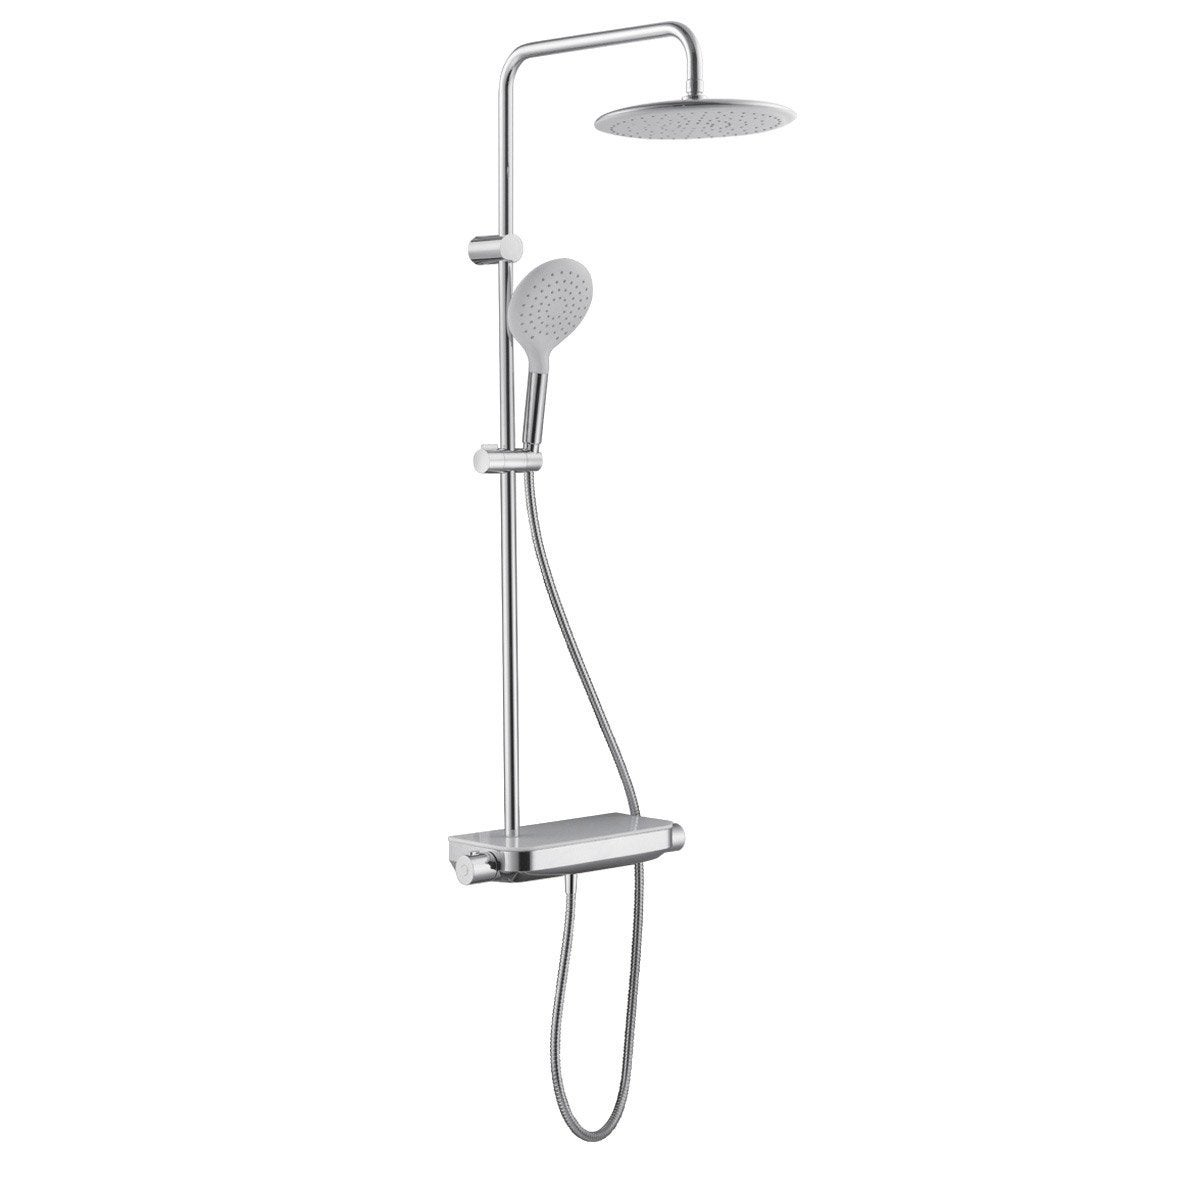 Colonne de douche sensea tabla leroy merlin for Ensemble de douche leroy merlin